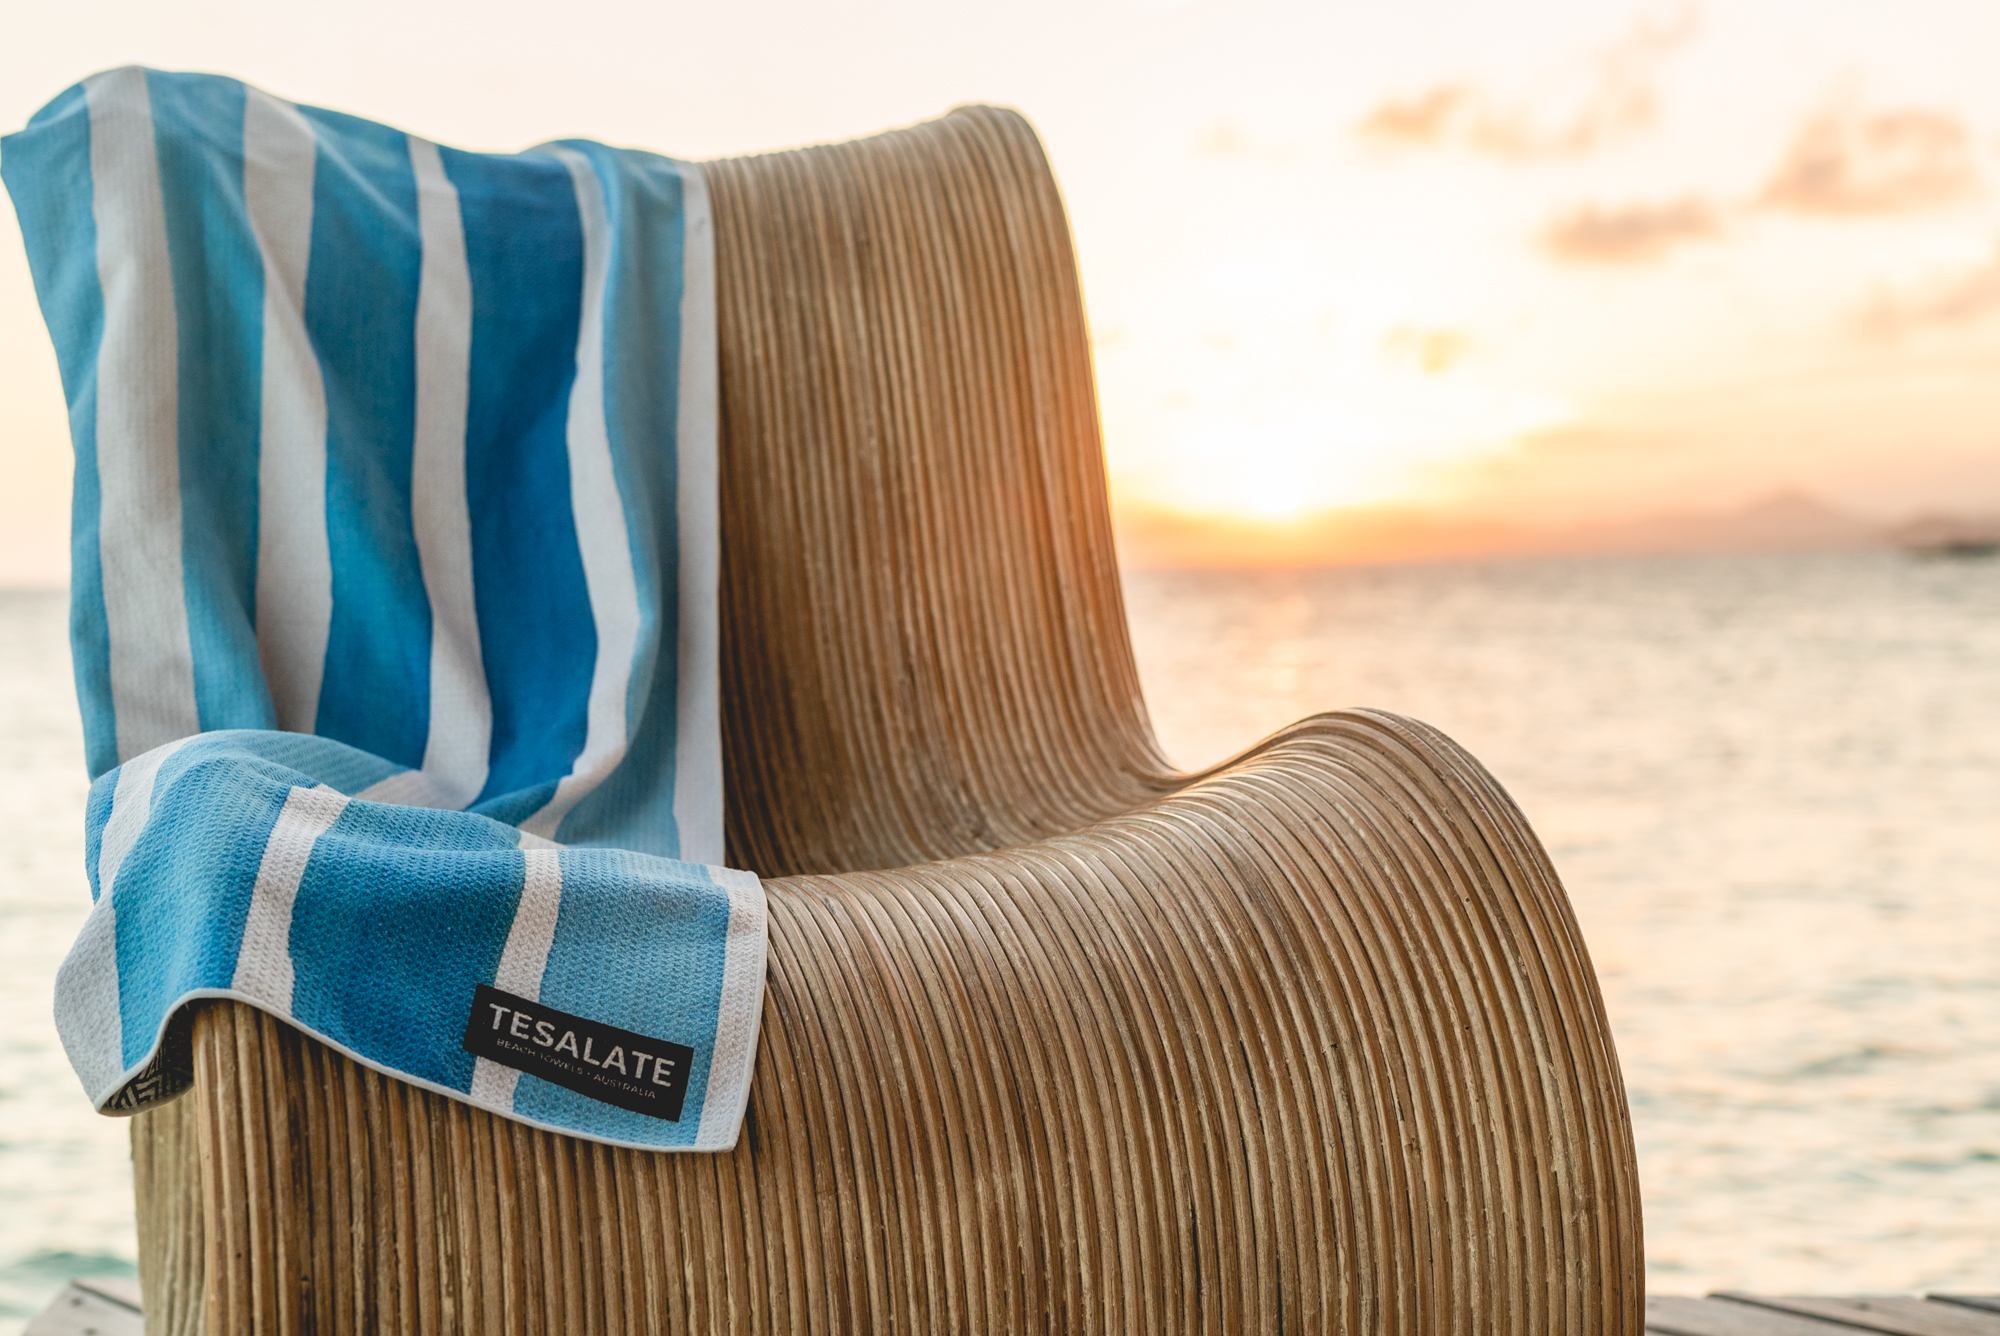 Tesalate Towel on a chair near the sea